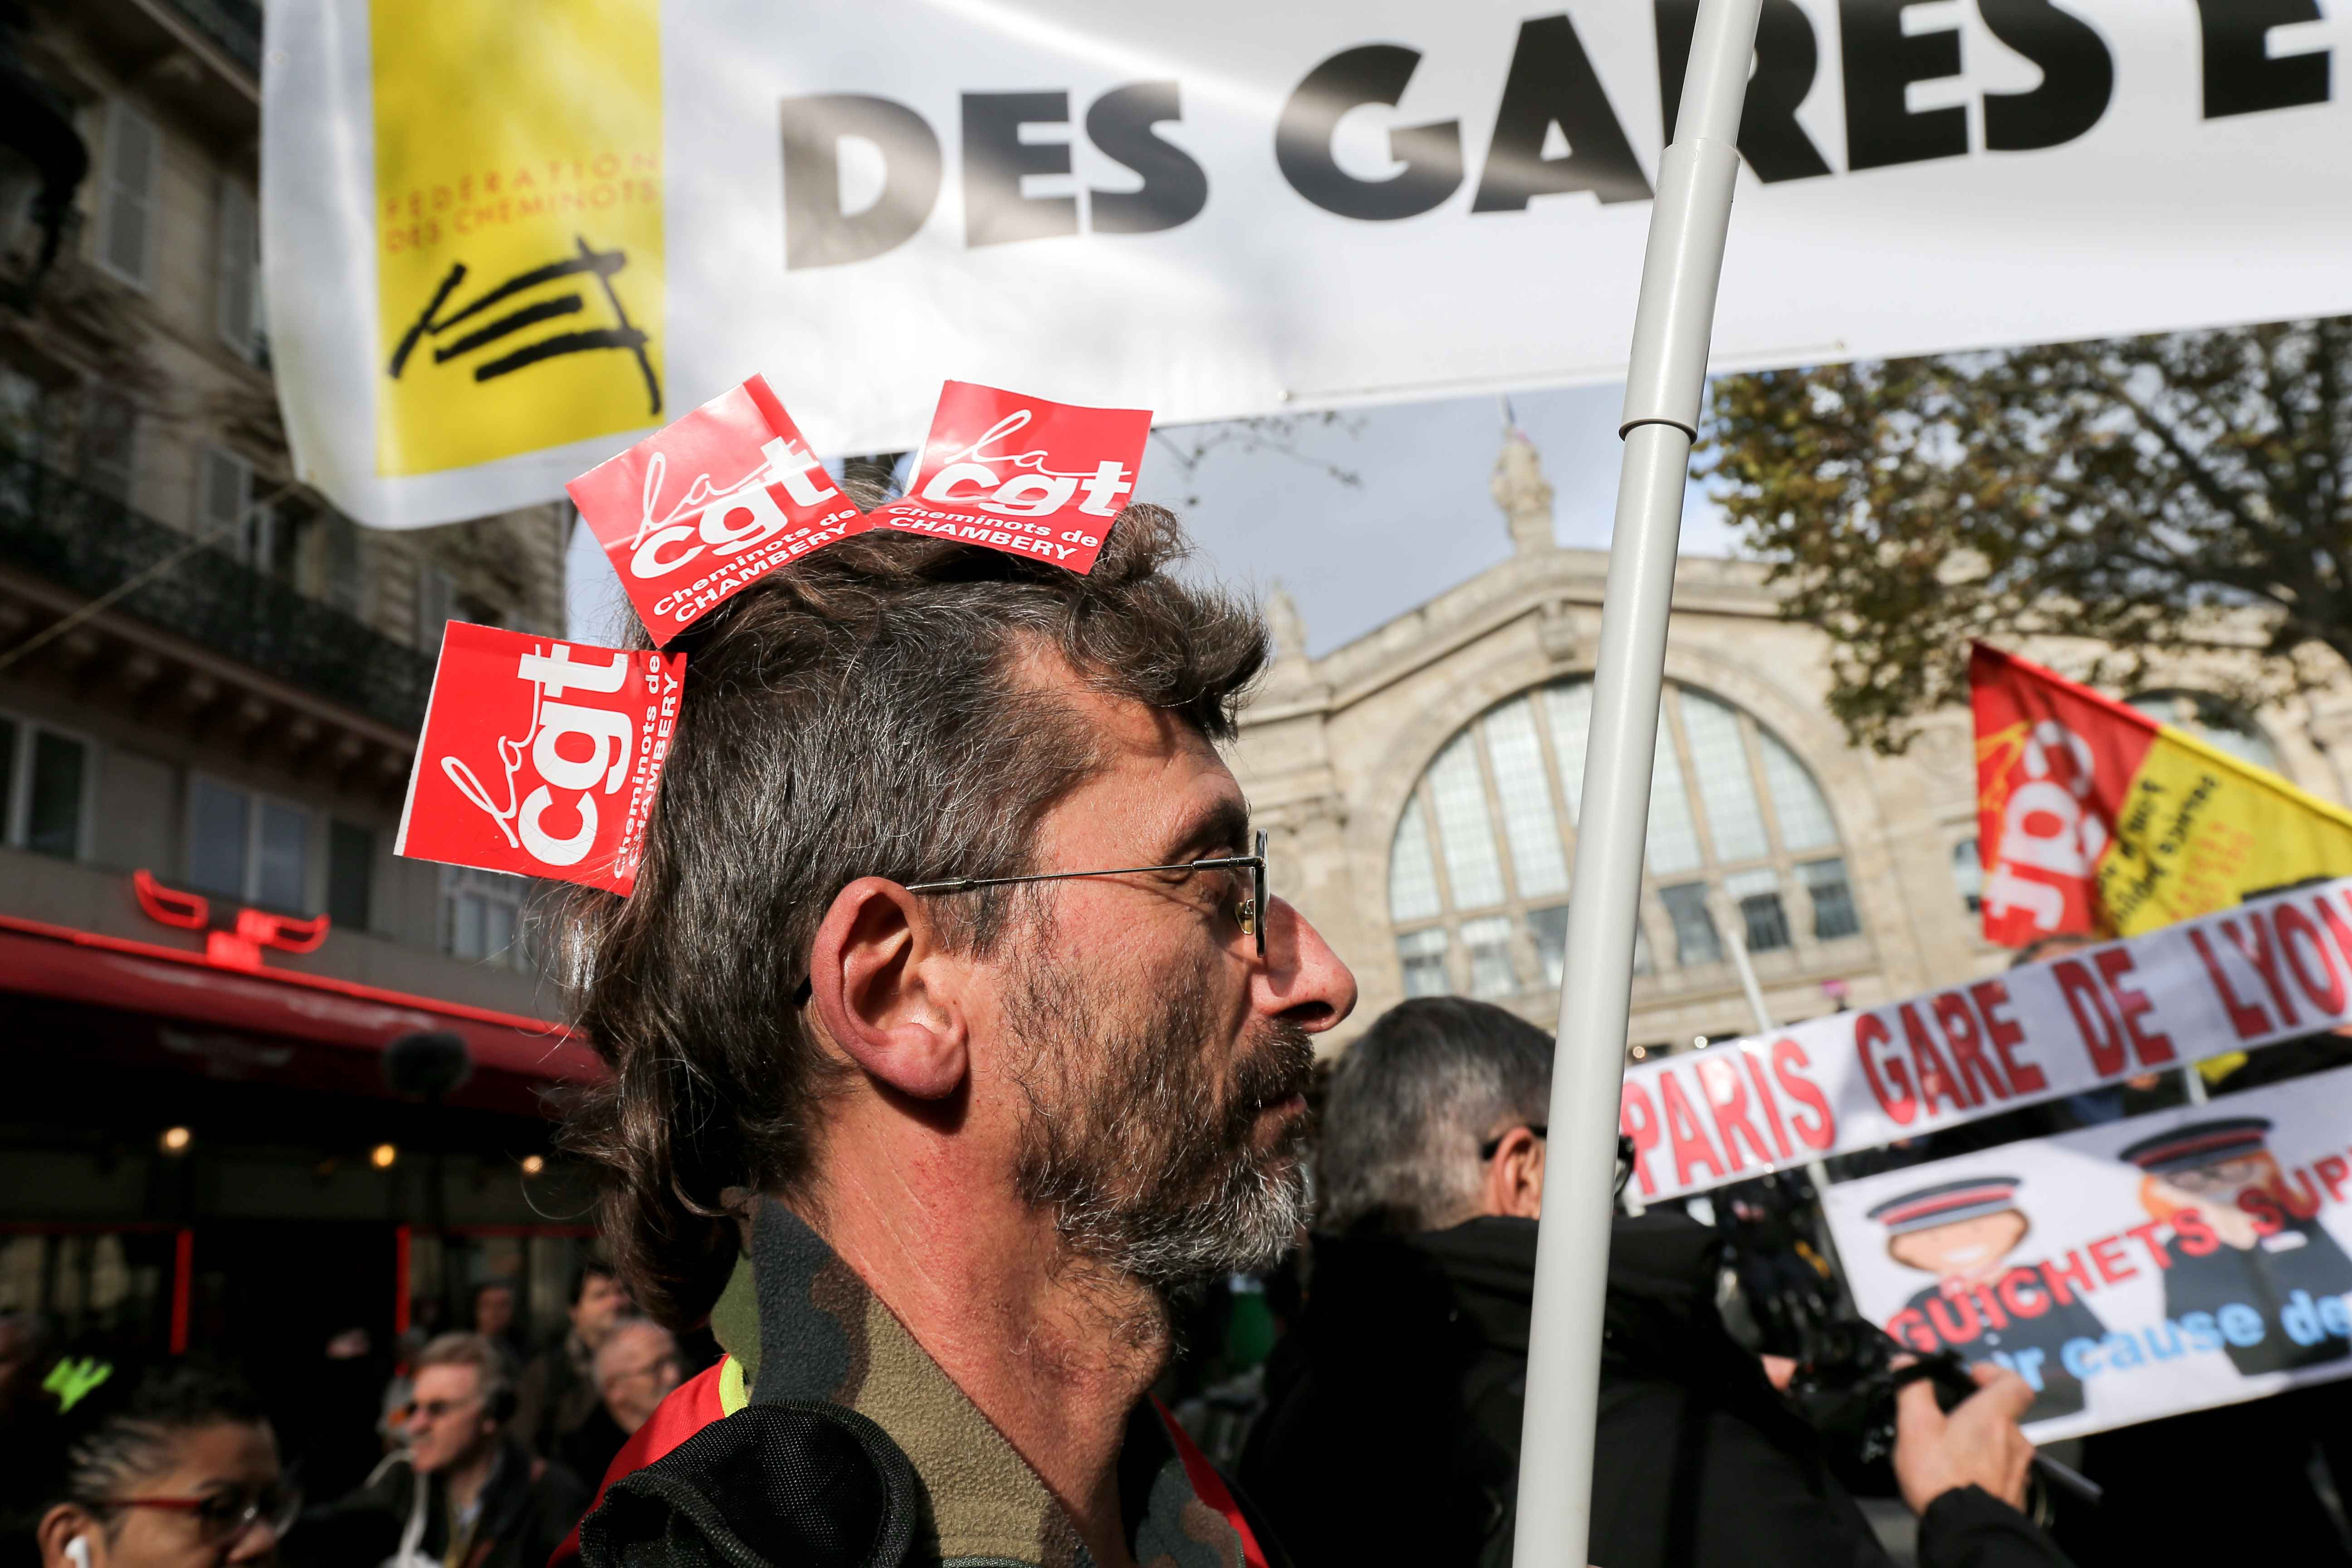 A CGT union railway worker takes part in a demonstration of employees of the state-owned rail operator SNCF called by CG union on November 5, 2019 in front of the Gare du Nord in Paris to defend SNCF's internal public service, denounce their living and wor